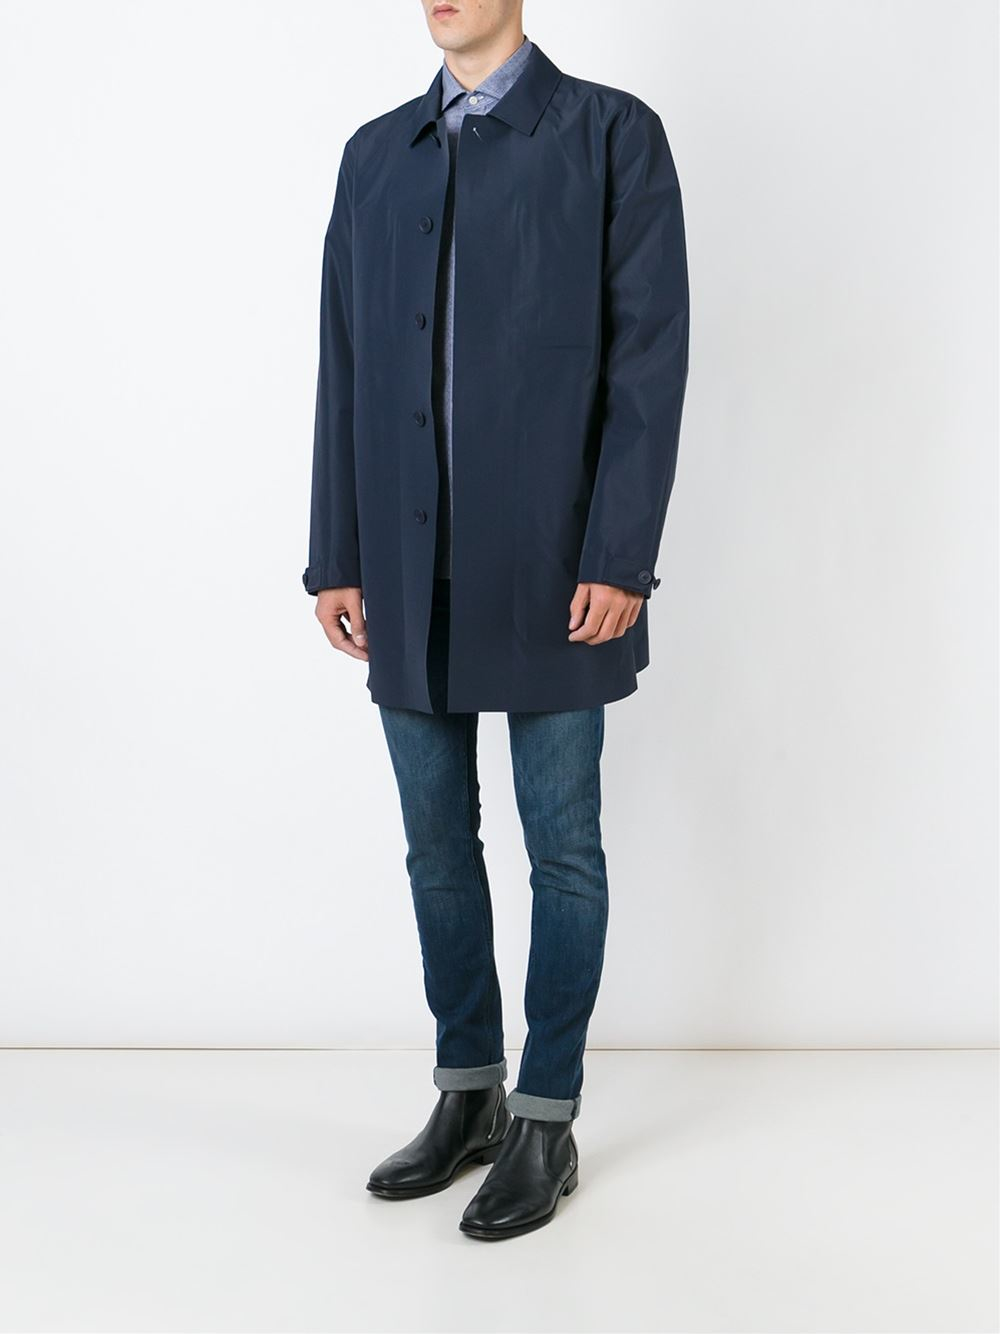 Z zegna Classic Raincoat in Blue for Men | Lyst